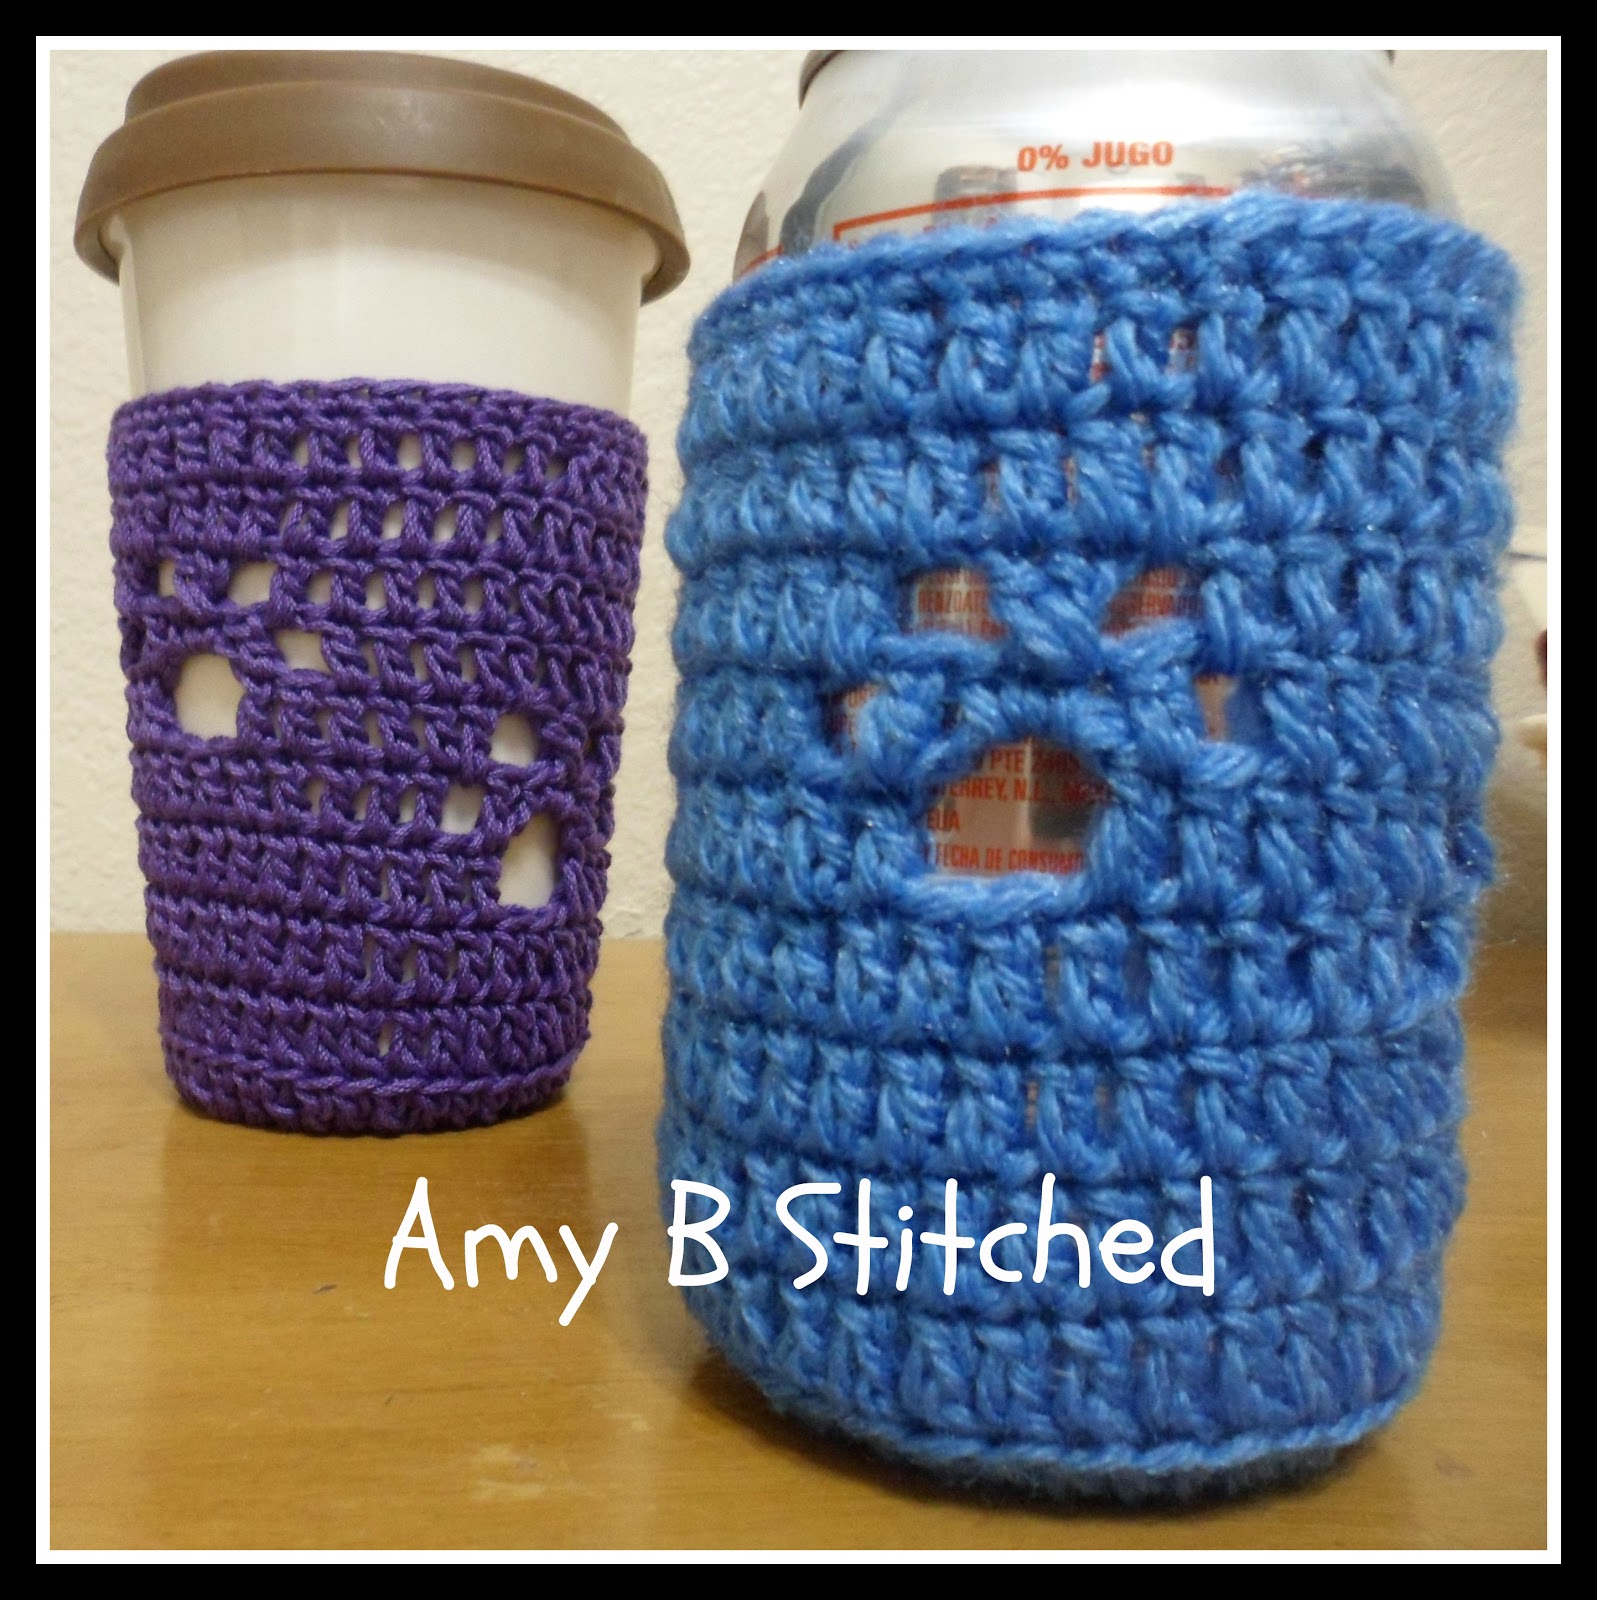 A Stitch At A Time For Amy B Stitched Meandering Paw Print Cup Cozy